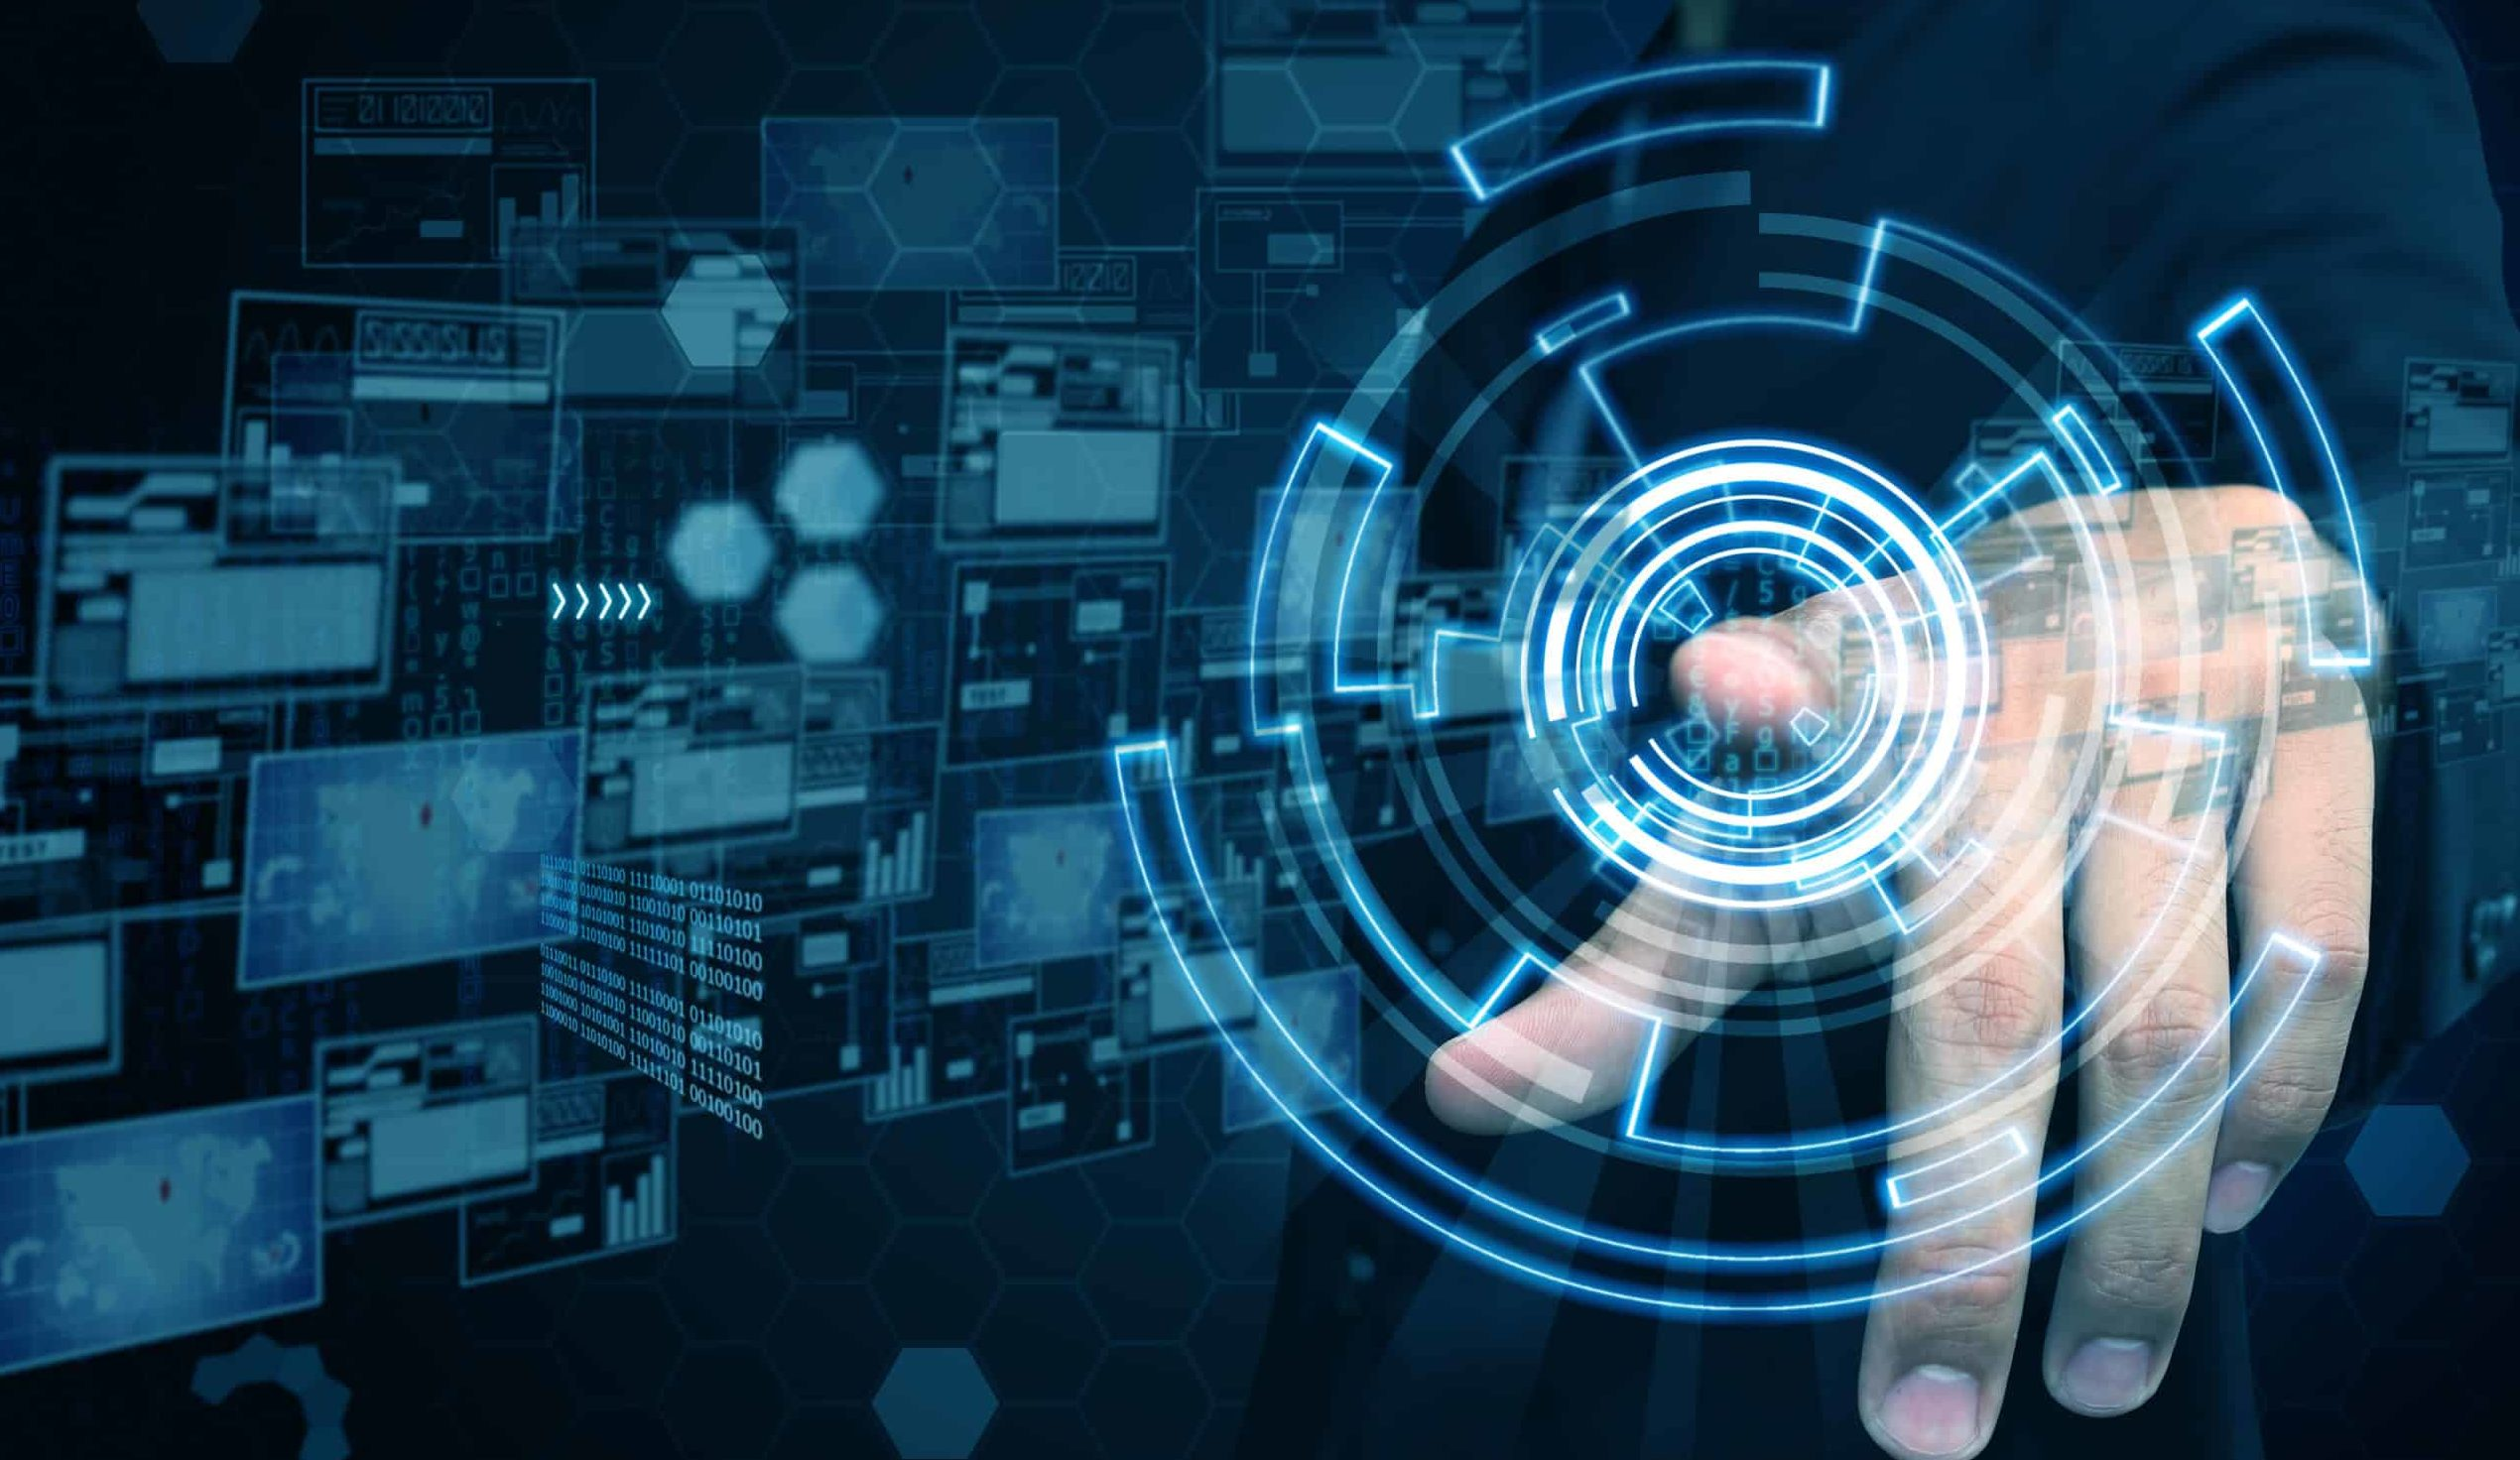 IoT empowers business models